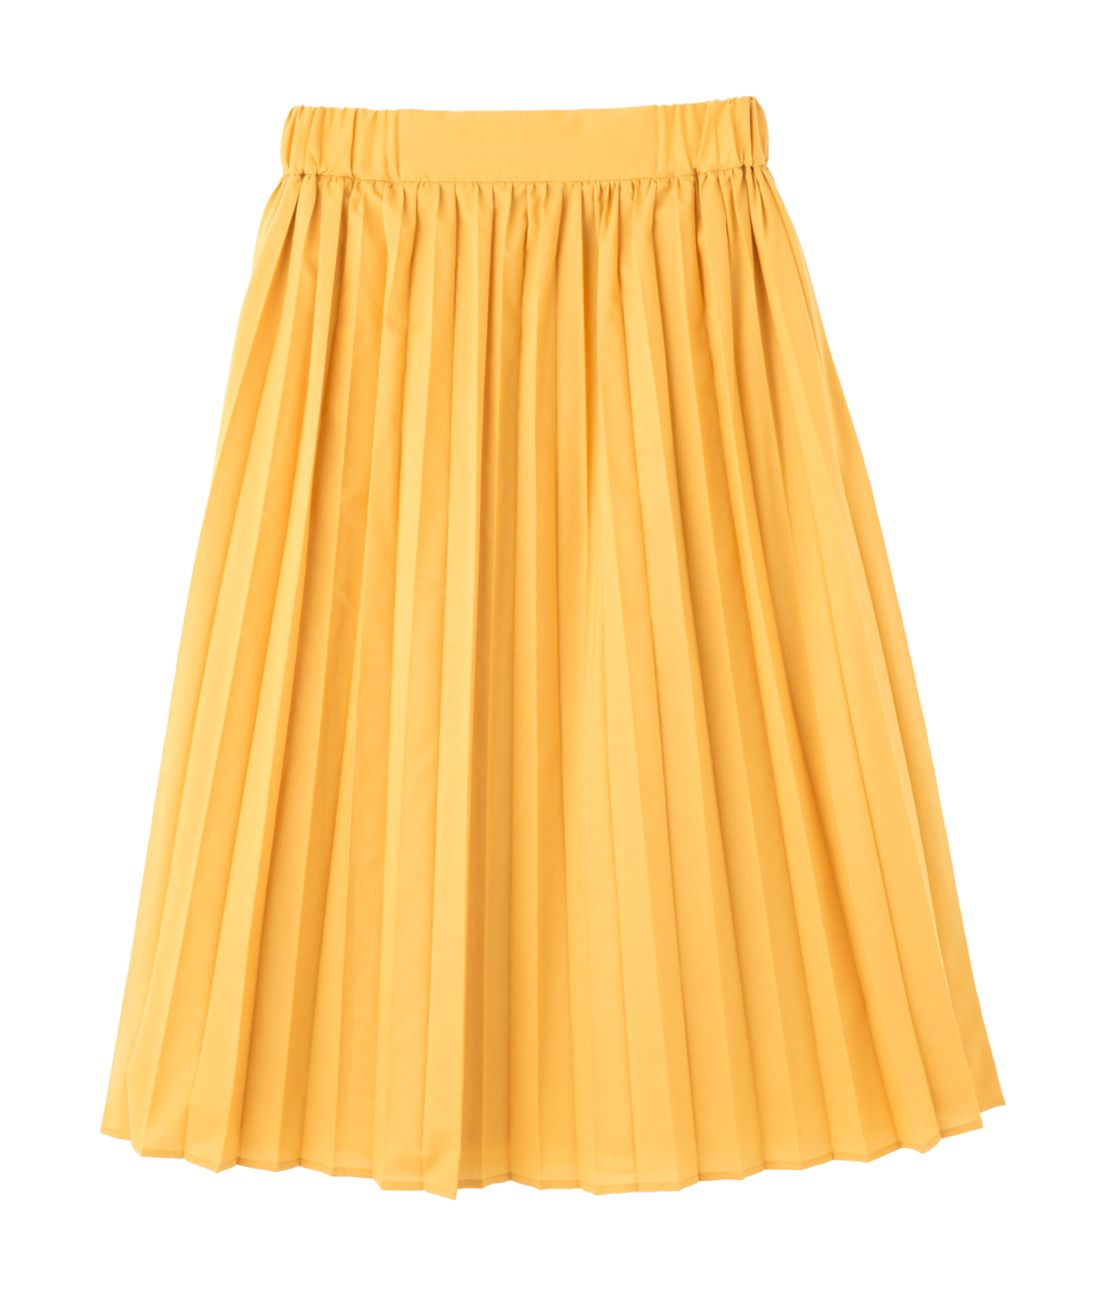 Narrow Pleated Midi Skirt